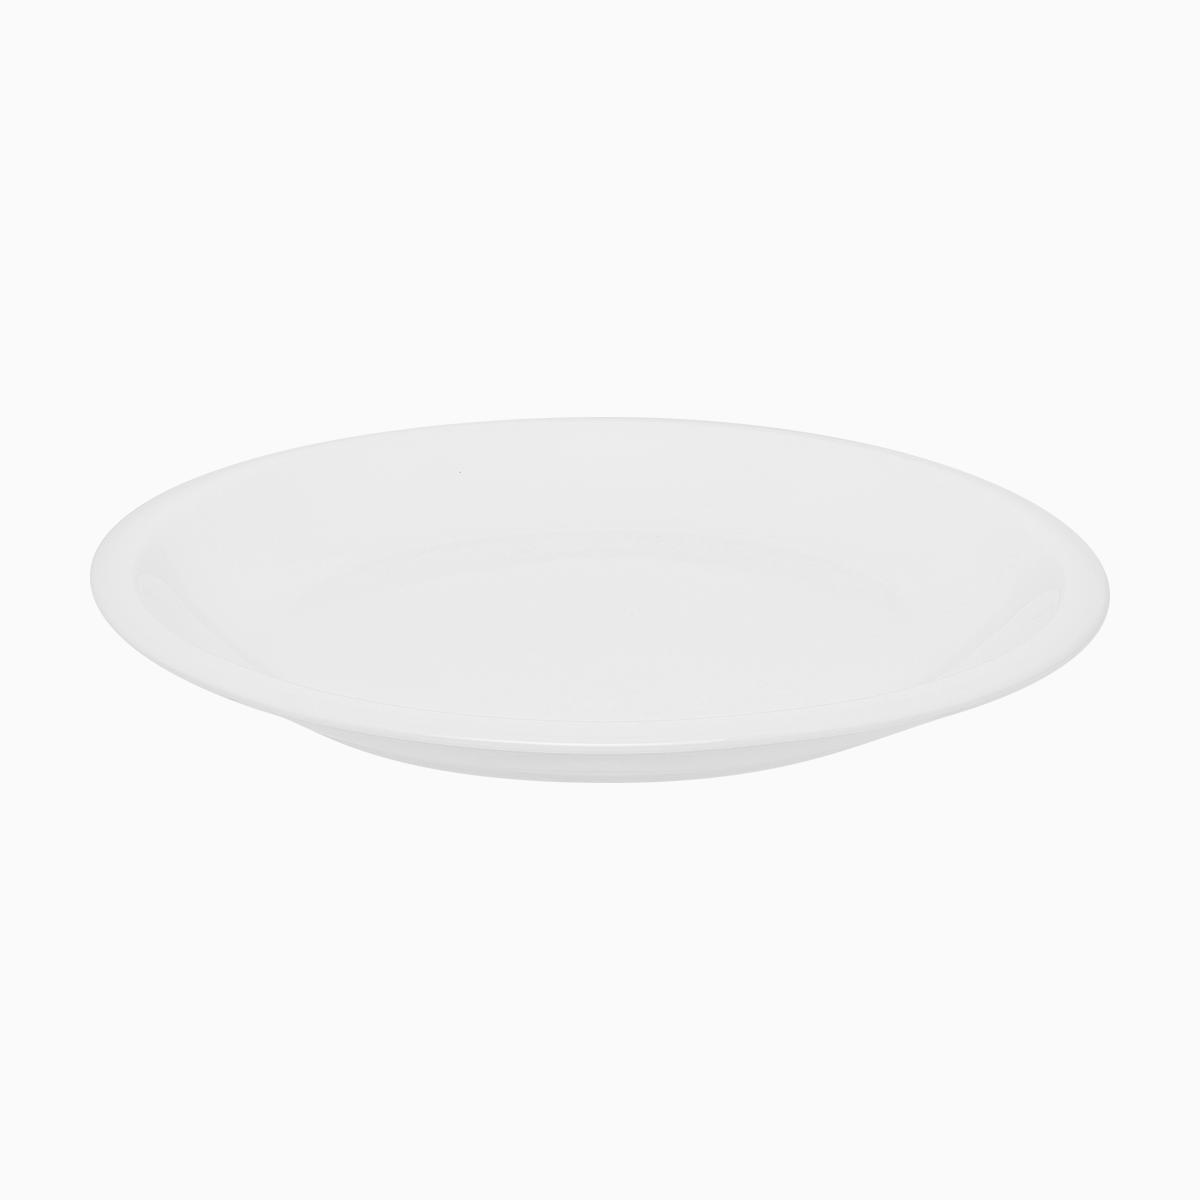 Dinner Plate With Narrow Edge